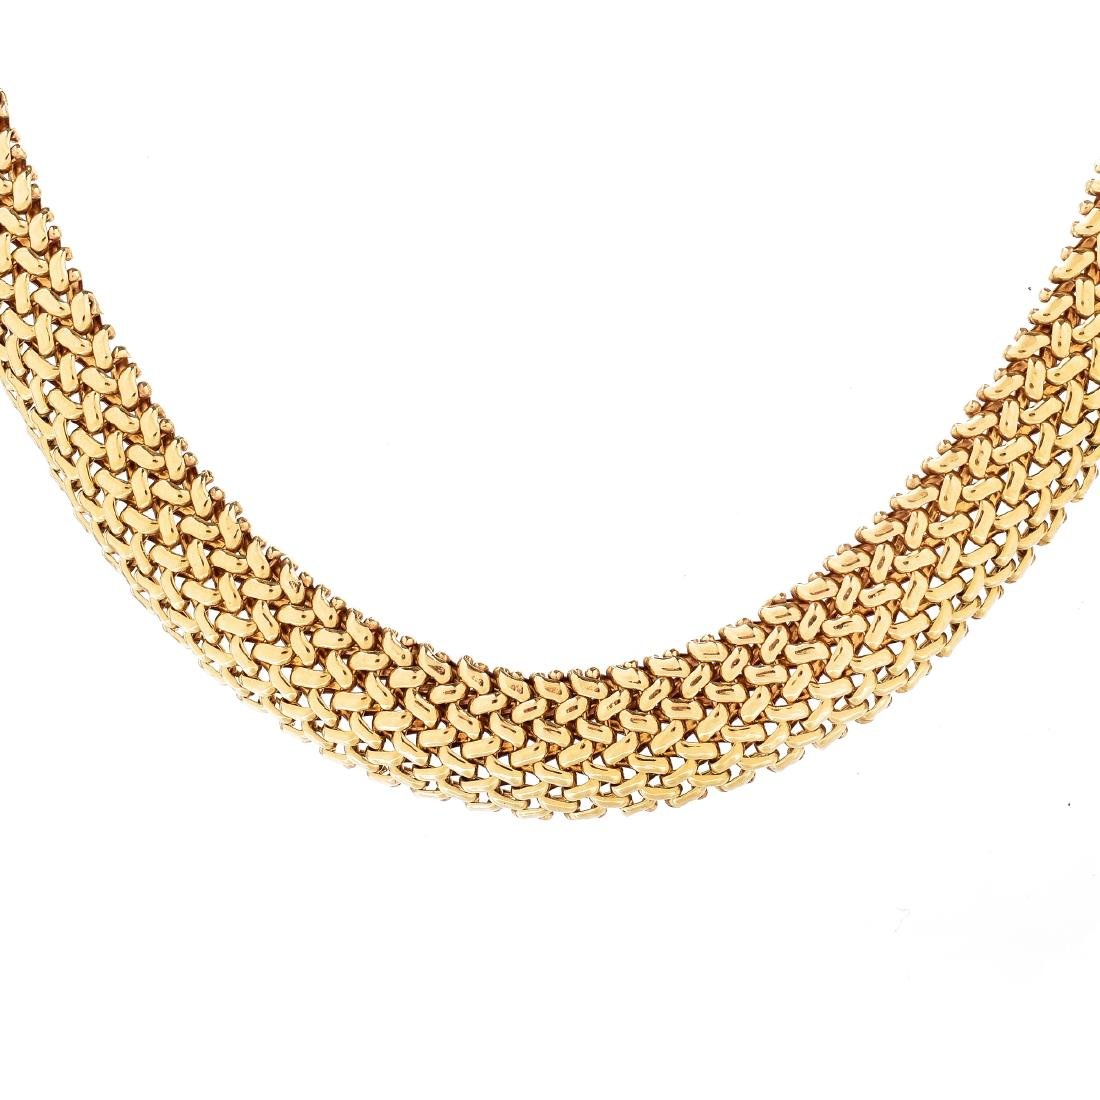 14K Gold Mesh Necklace